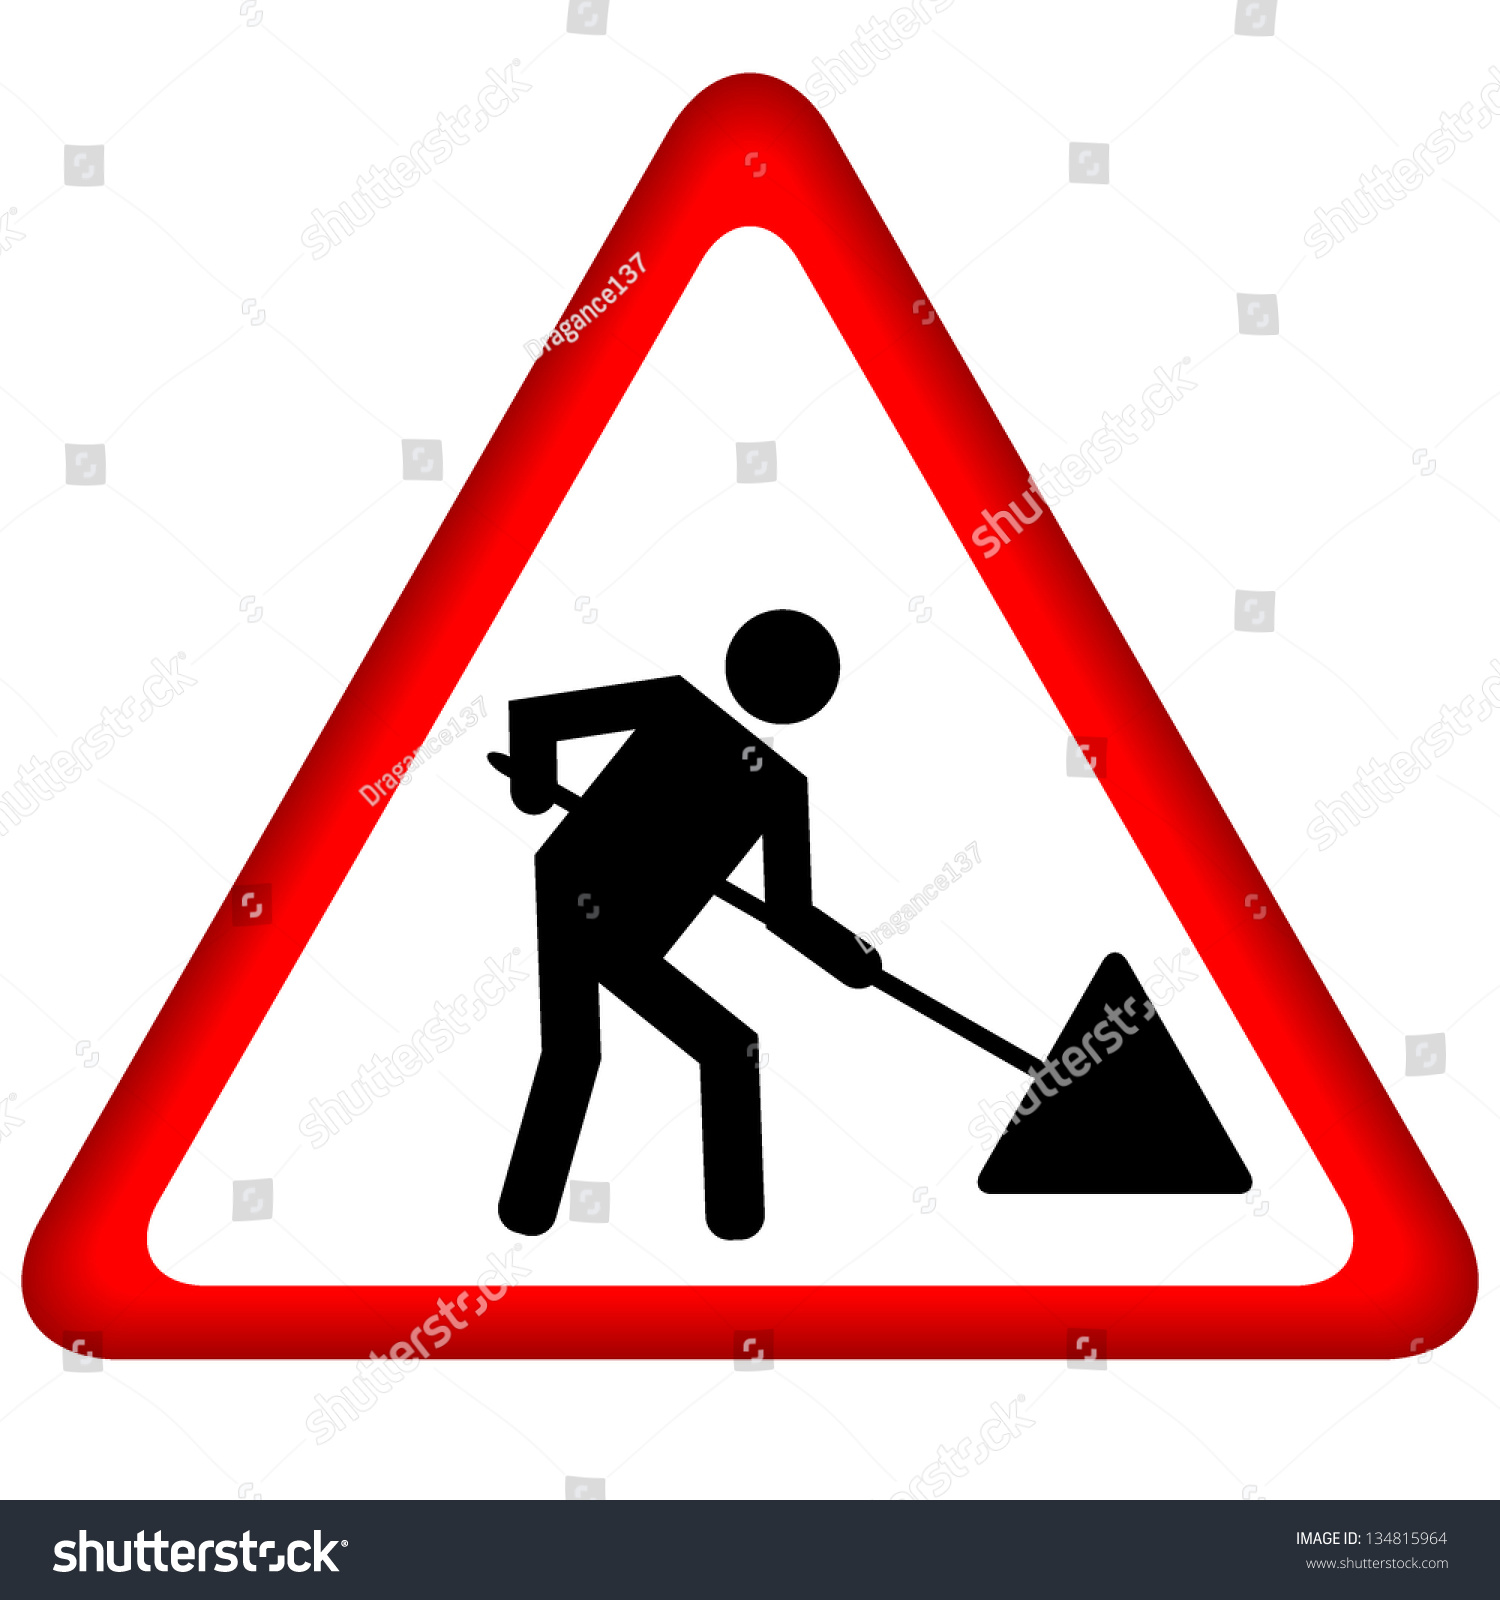 Road Works Sign Under Construction Stock Photo (Photo, Vector ...